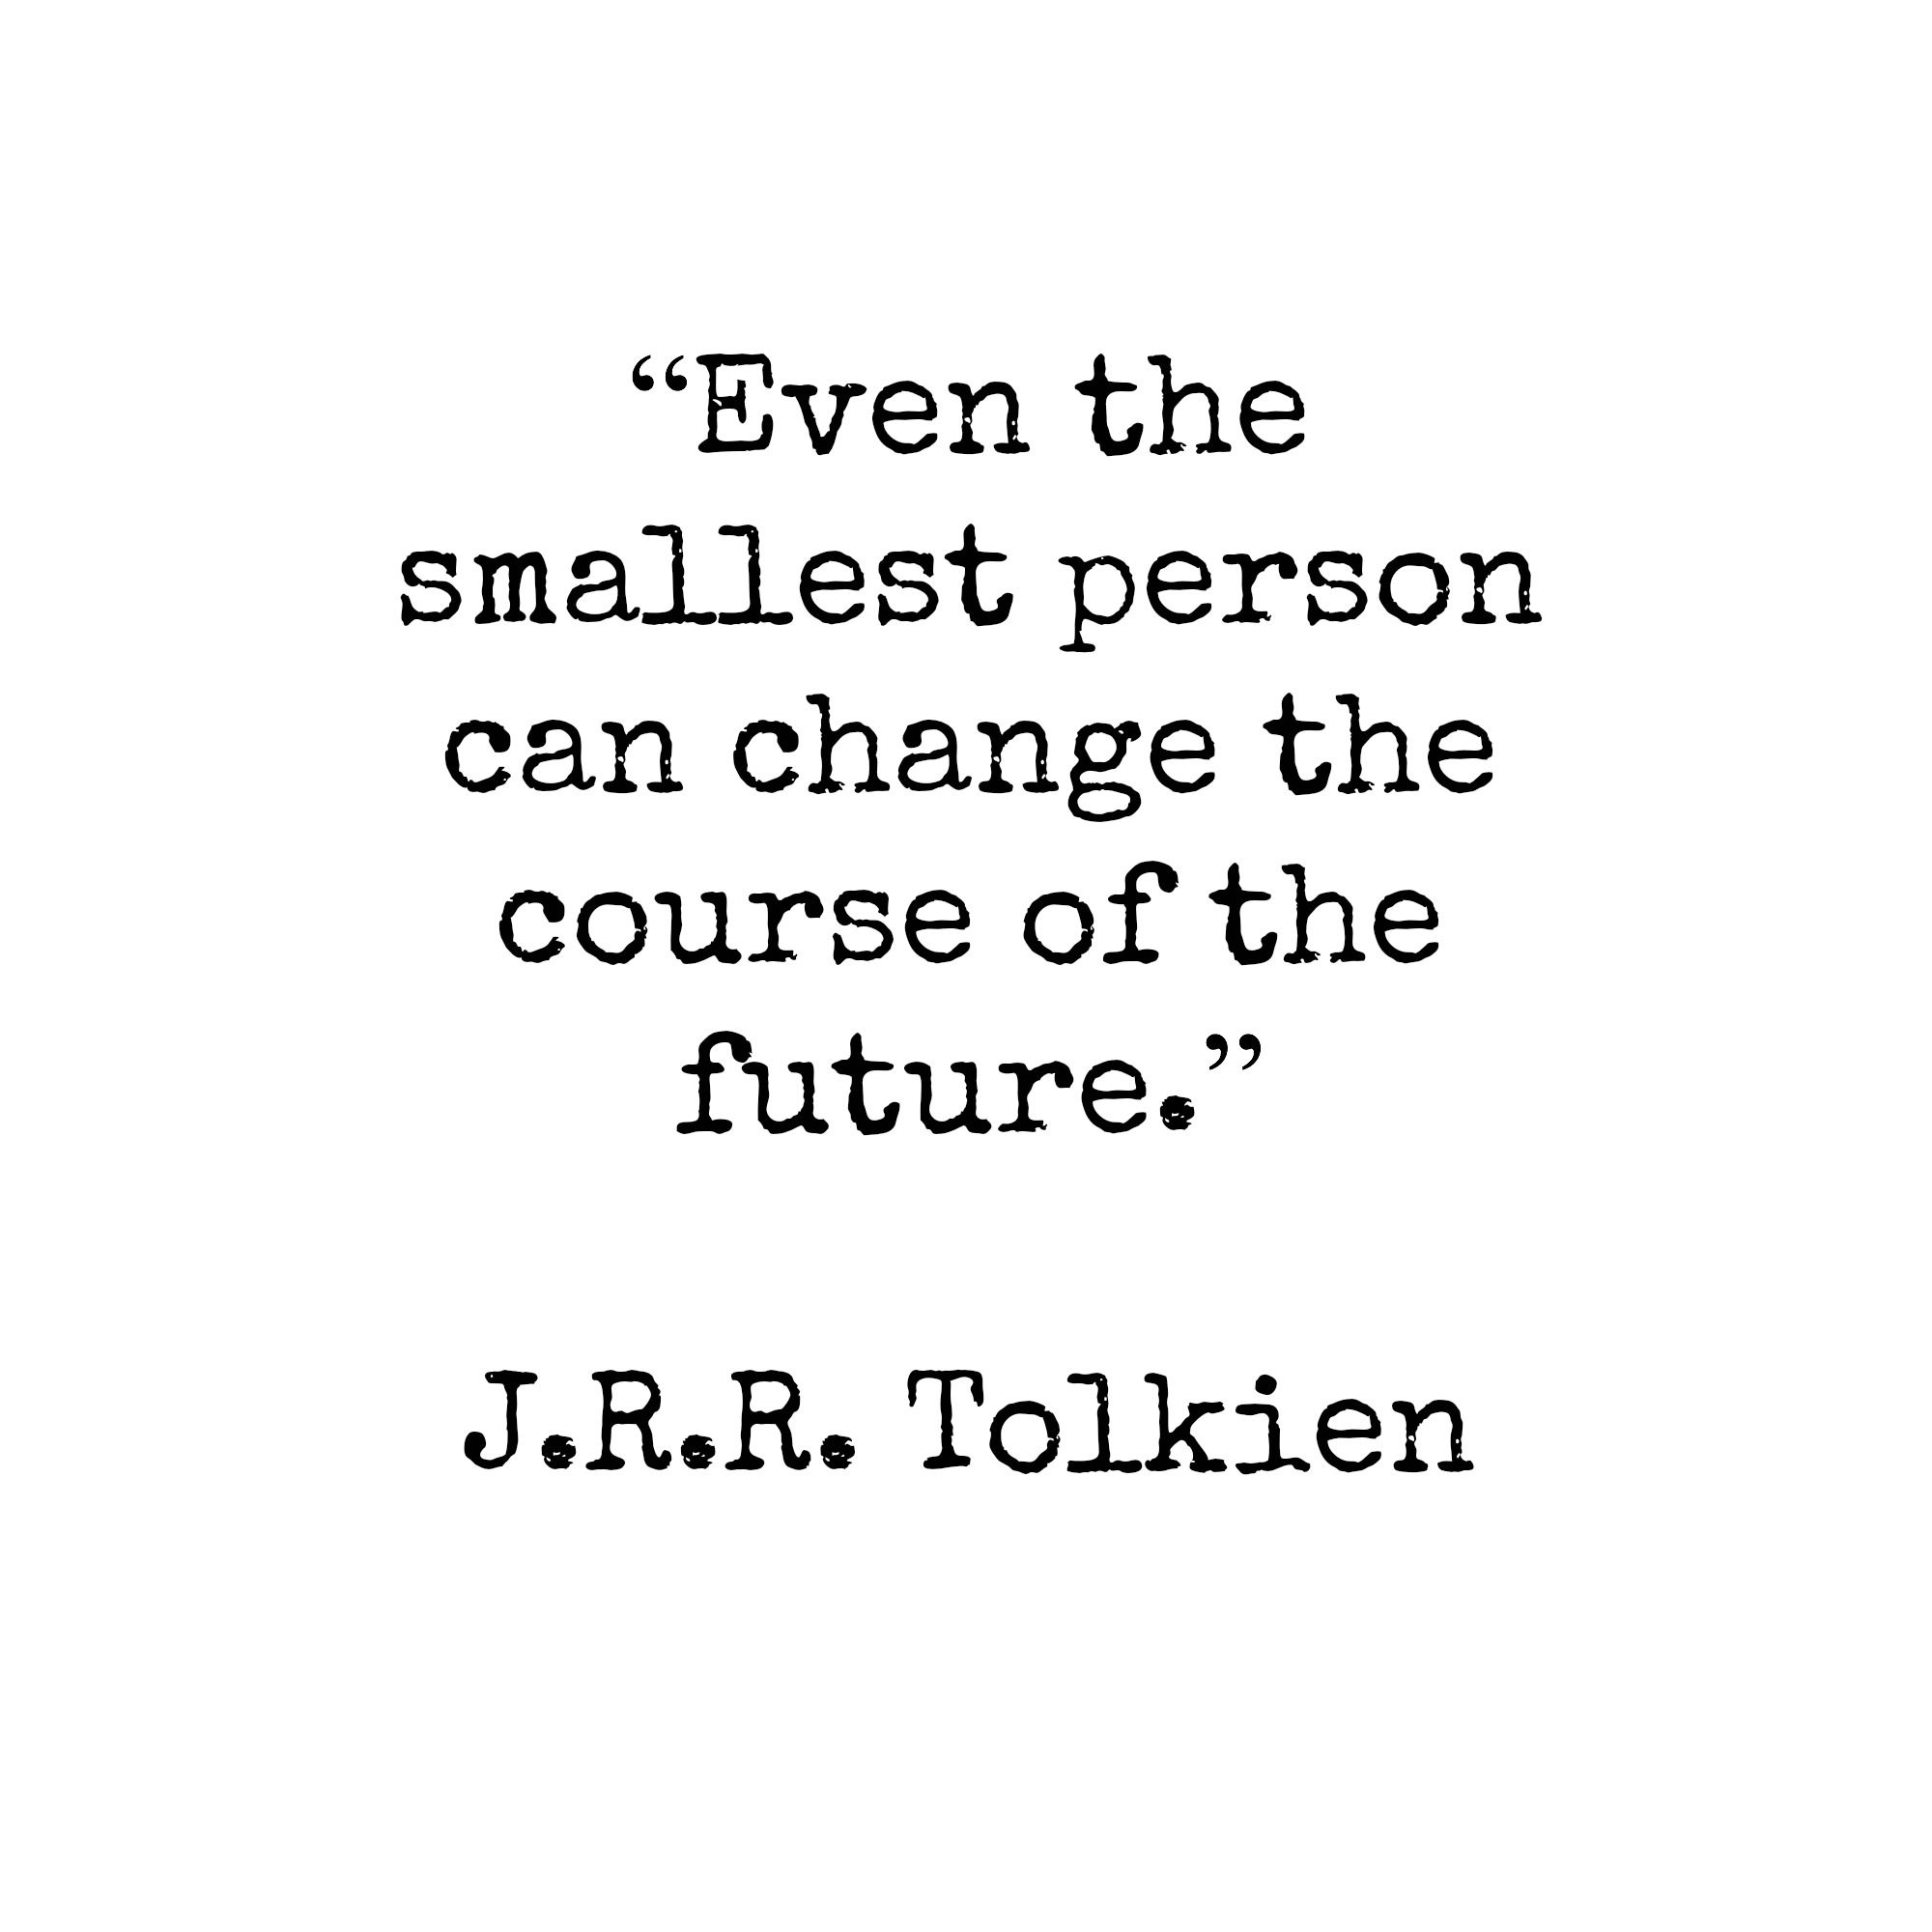 Jrr Tolkien Quotes 10 J.R.R. Tolkien Quotes to Live By | My Babbles | Pinterest  Jrr Tolkien Quotes